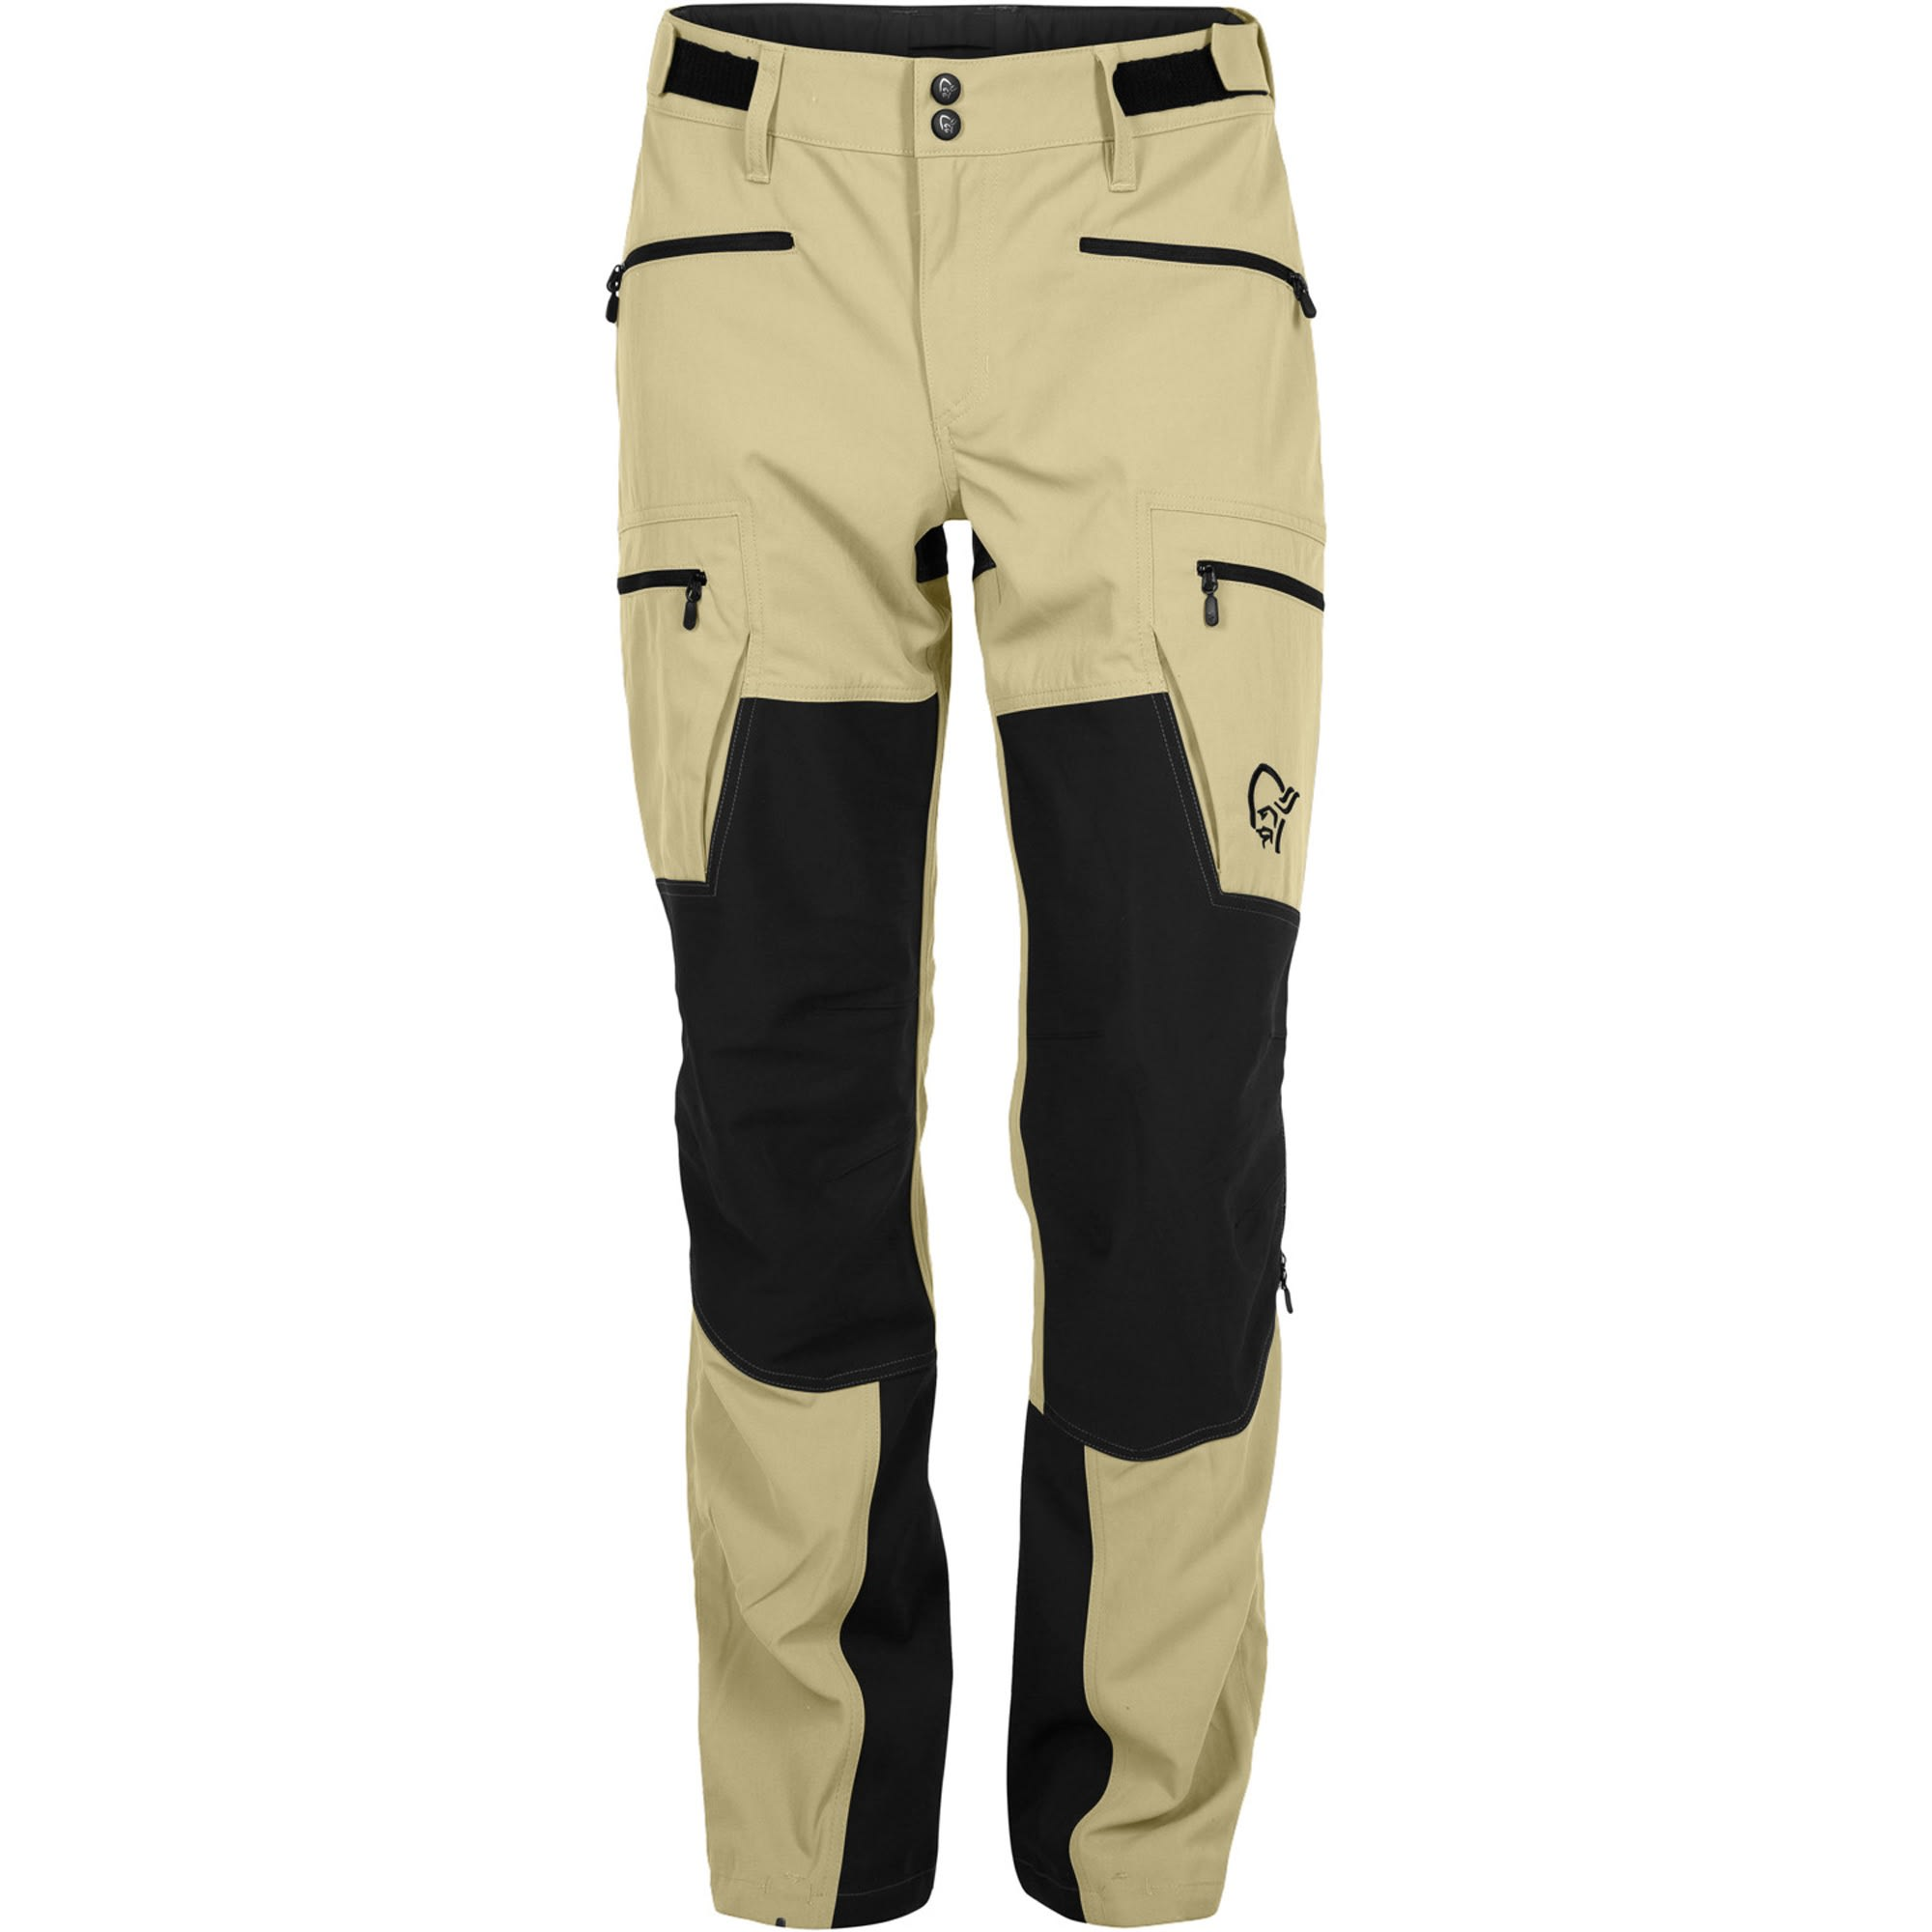 ccc445ee Buy Norrøna Svalbard Heavy Duty Pants Women's (2018) from Outnorth